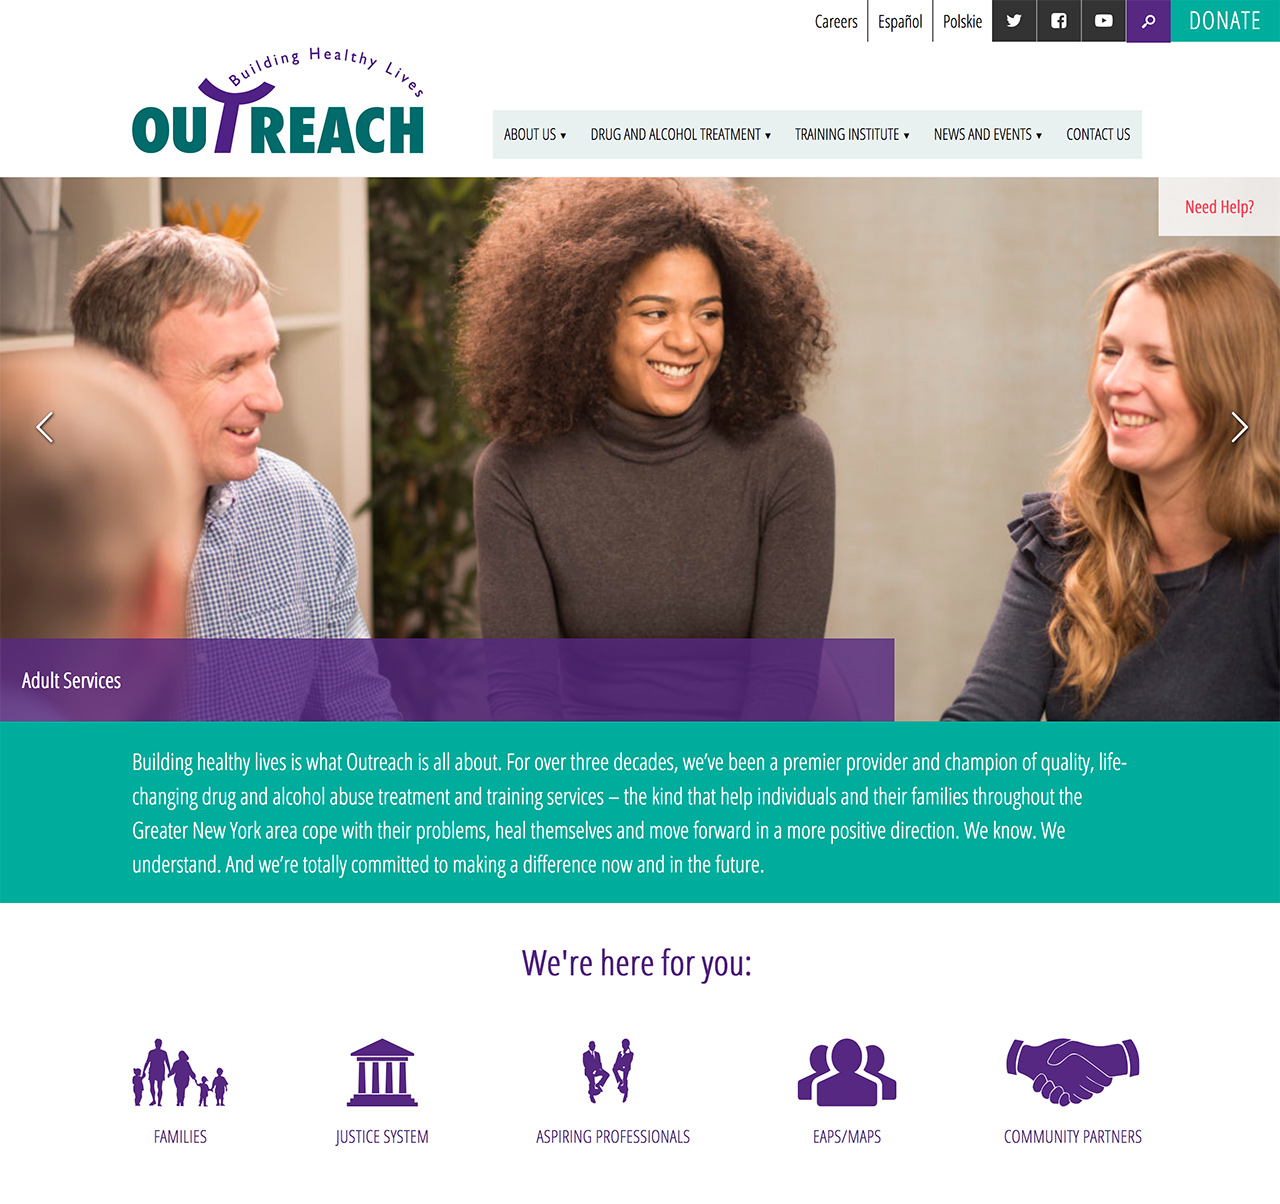 New Horizons for Outreach